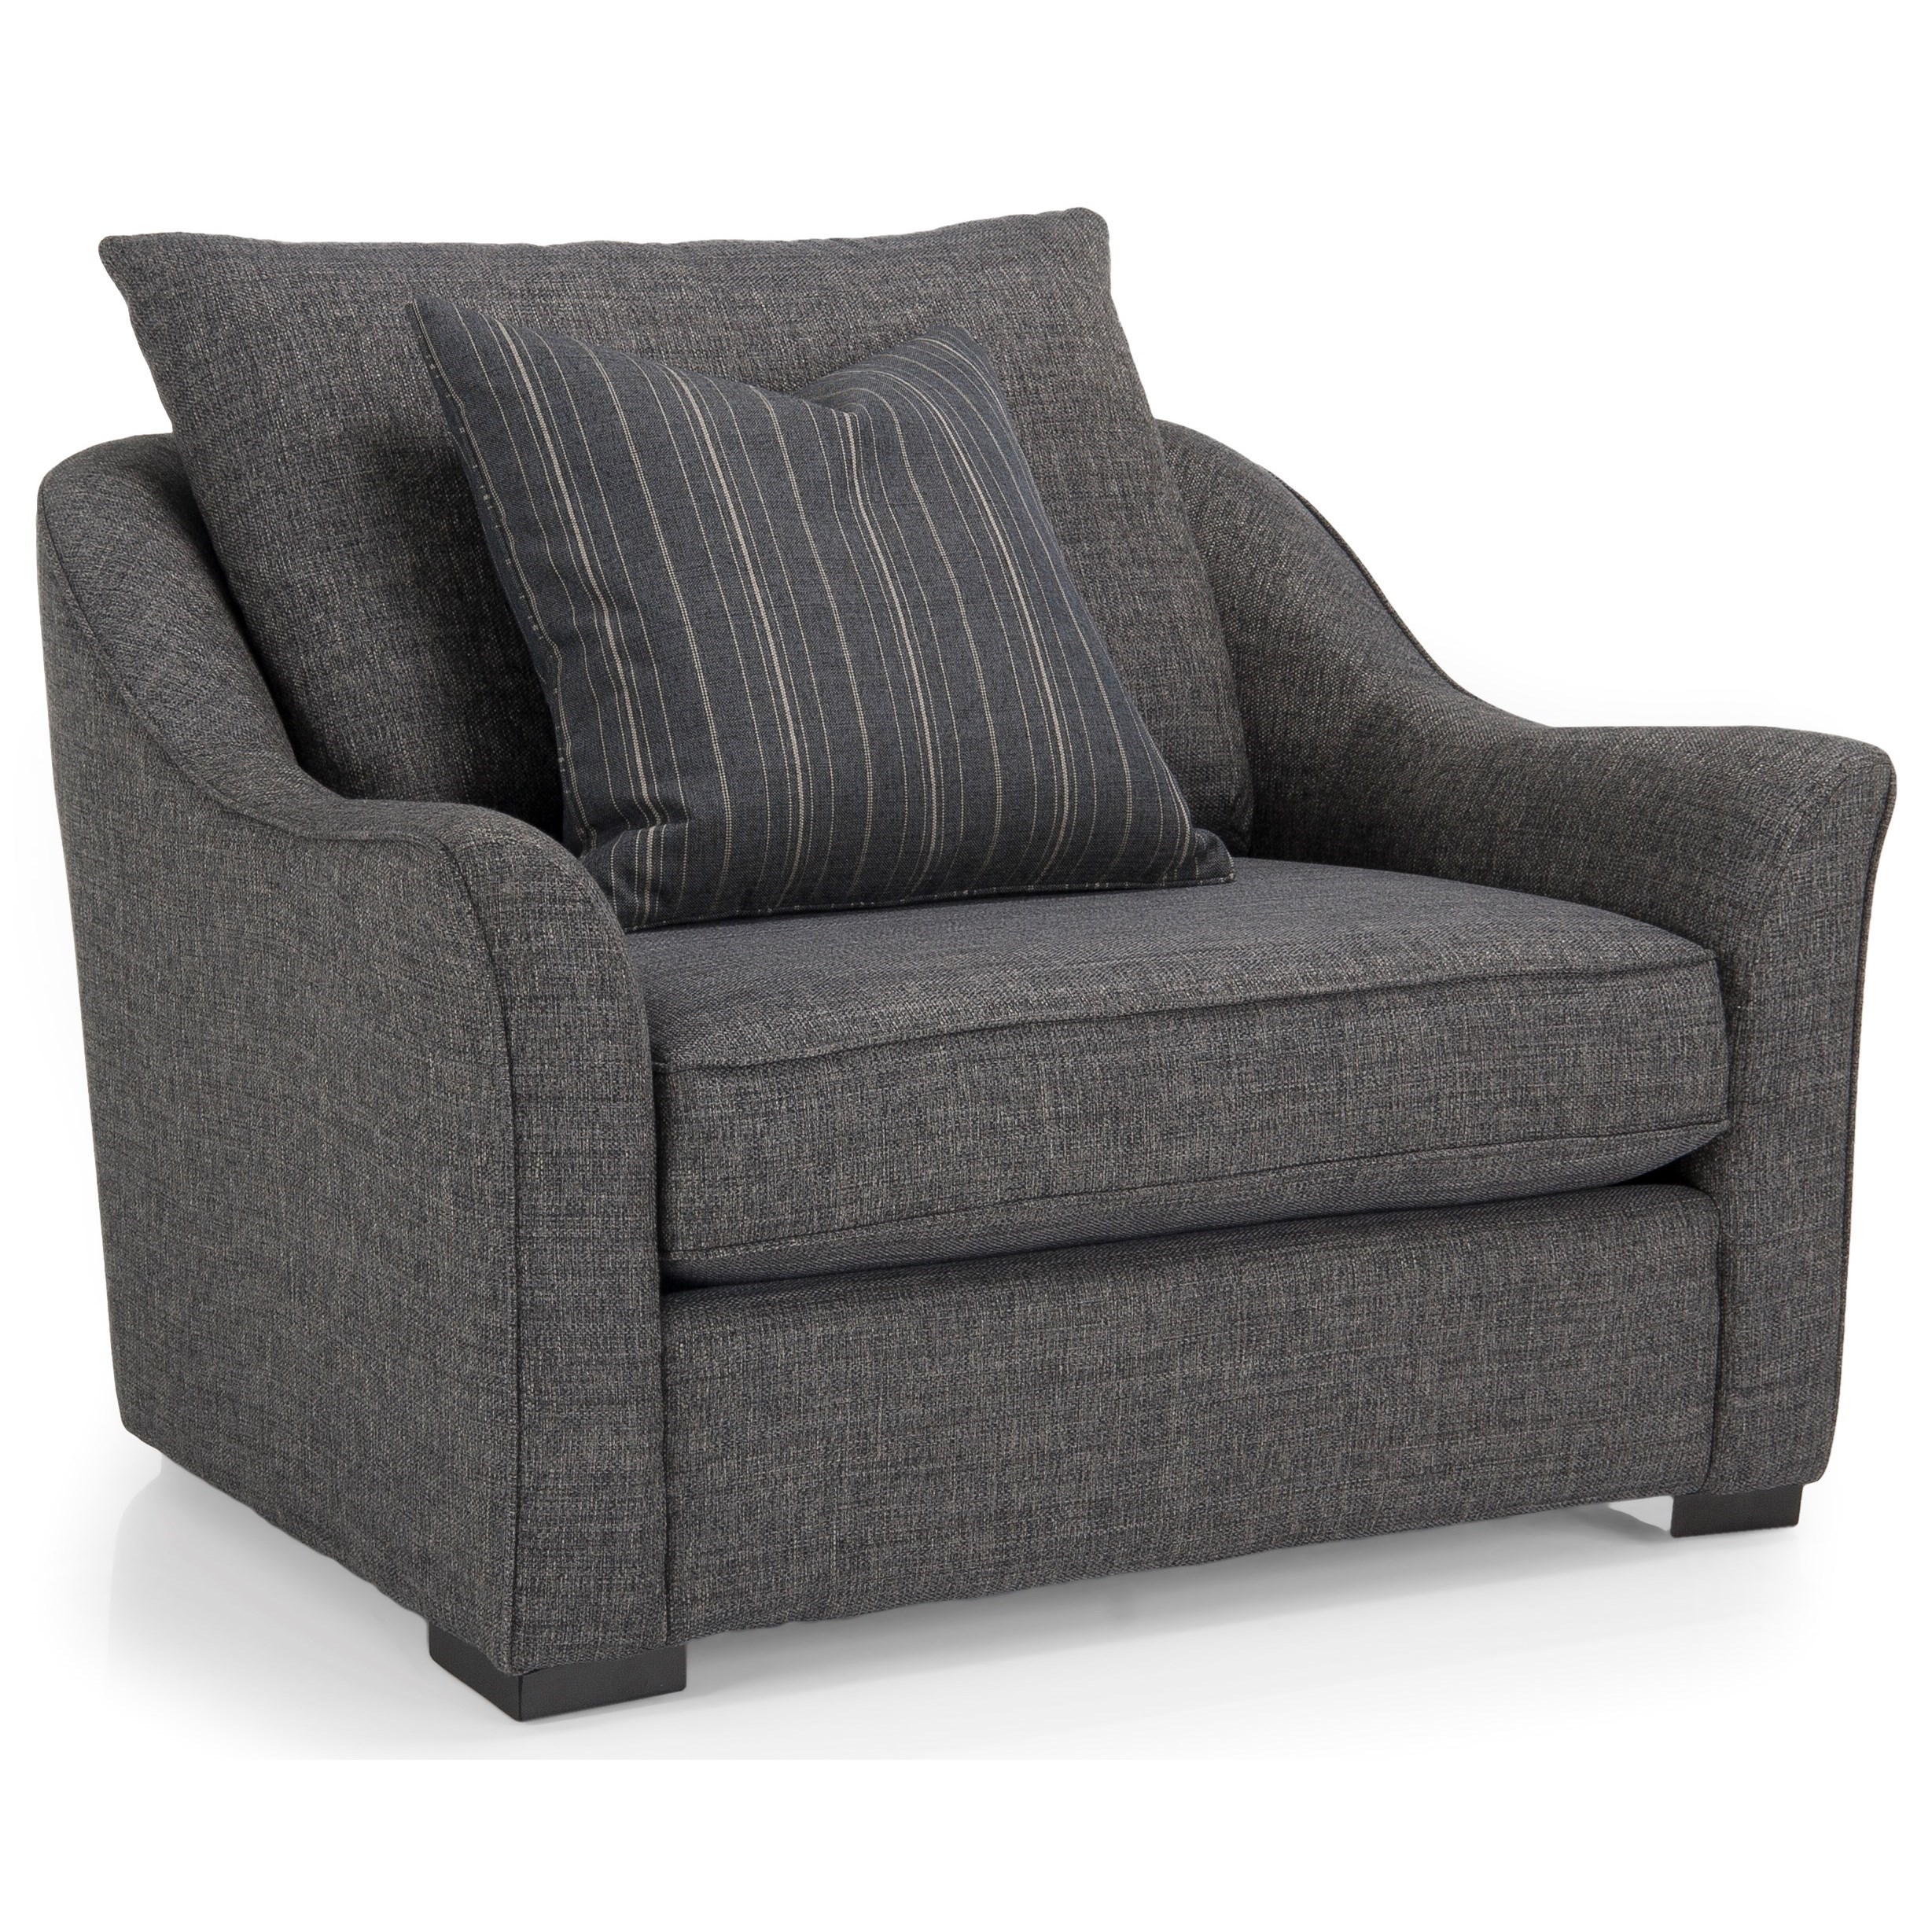 7112 Series Chair by Decor-Rest at Johnny Janosik